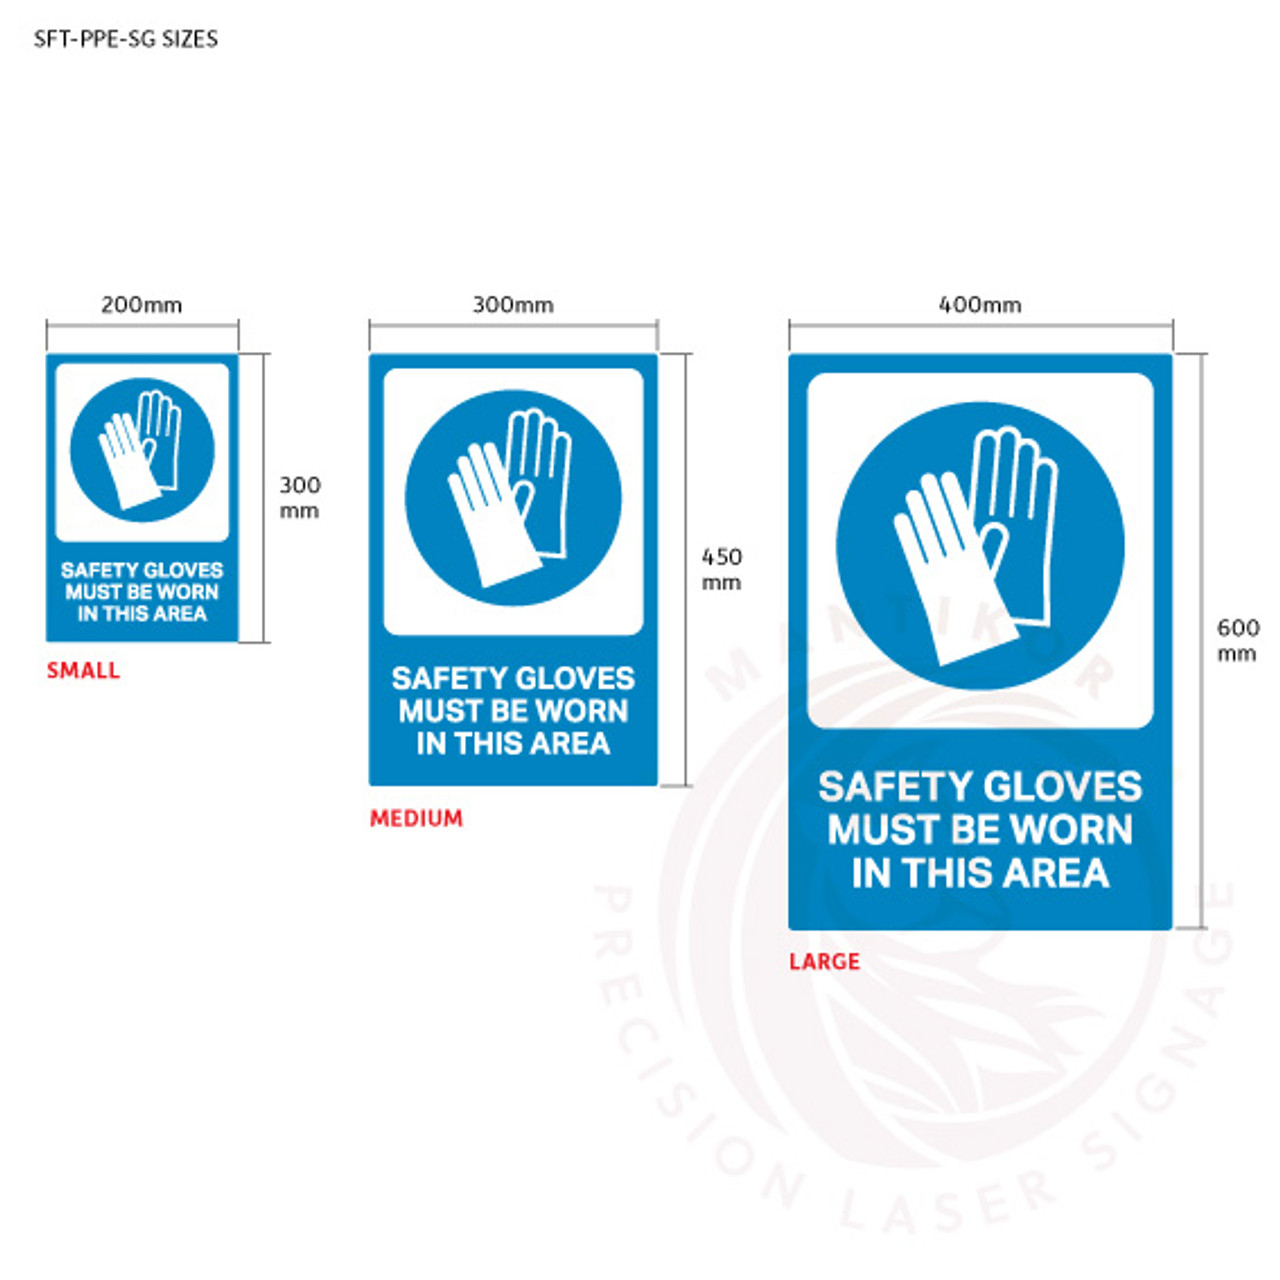 PPE Safety Signage - Safety gloves sign sizes